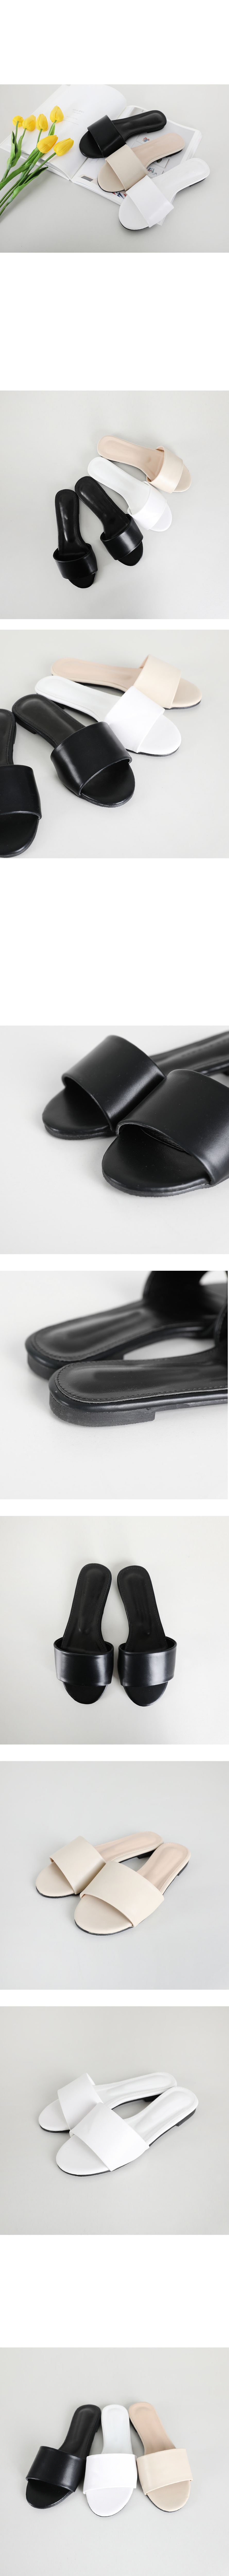 Riel cover slippers